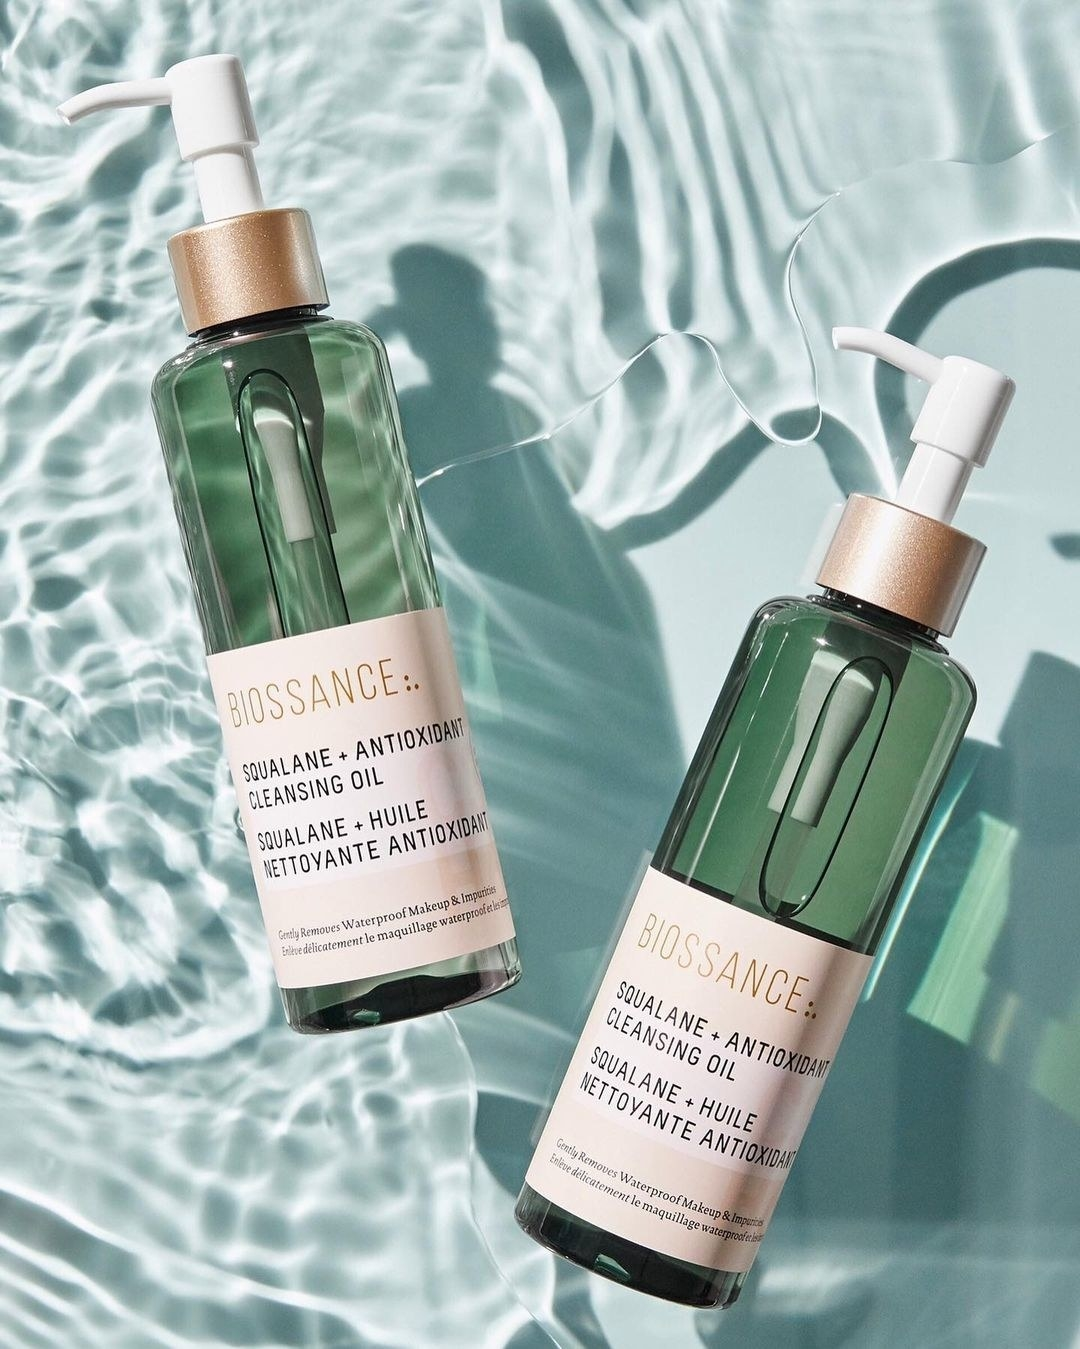 Two bottles of cleansing oil floating in water